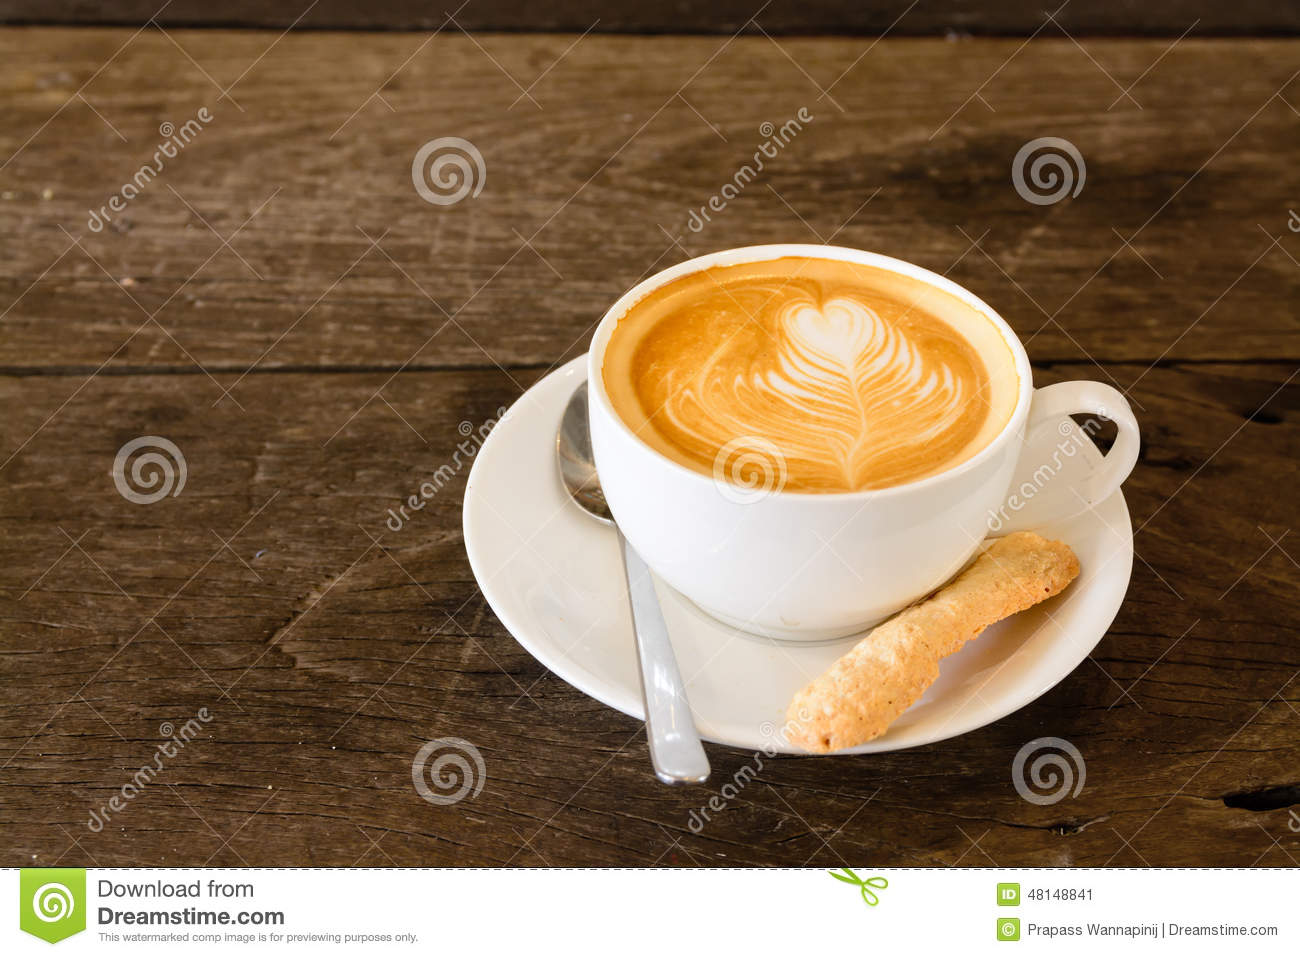 Coffee Latte Art Jogja Latte Art Coffee Stock Image Image Of Fresh Food